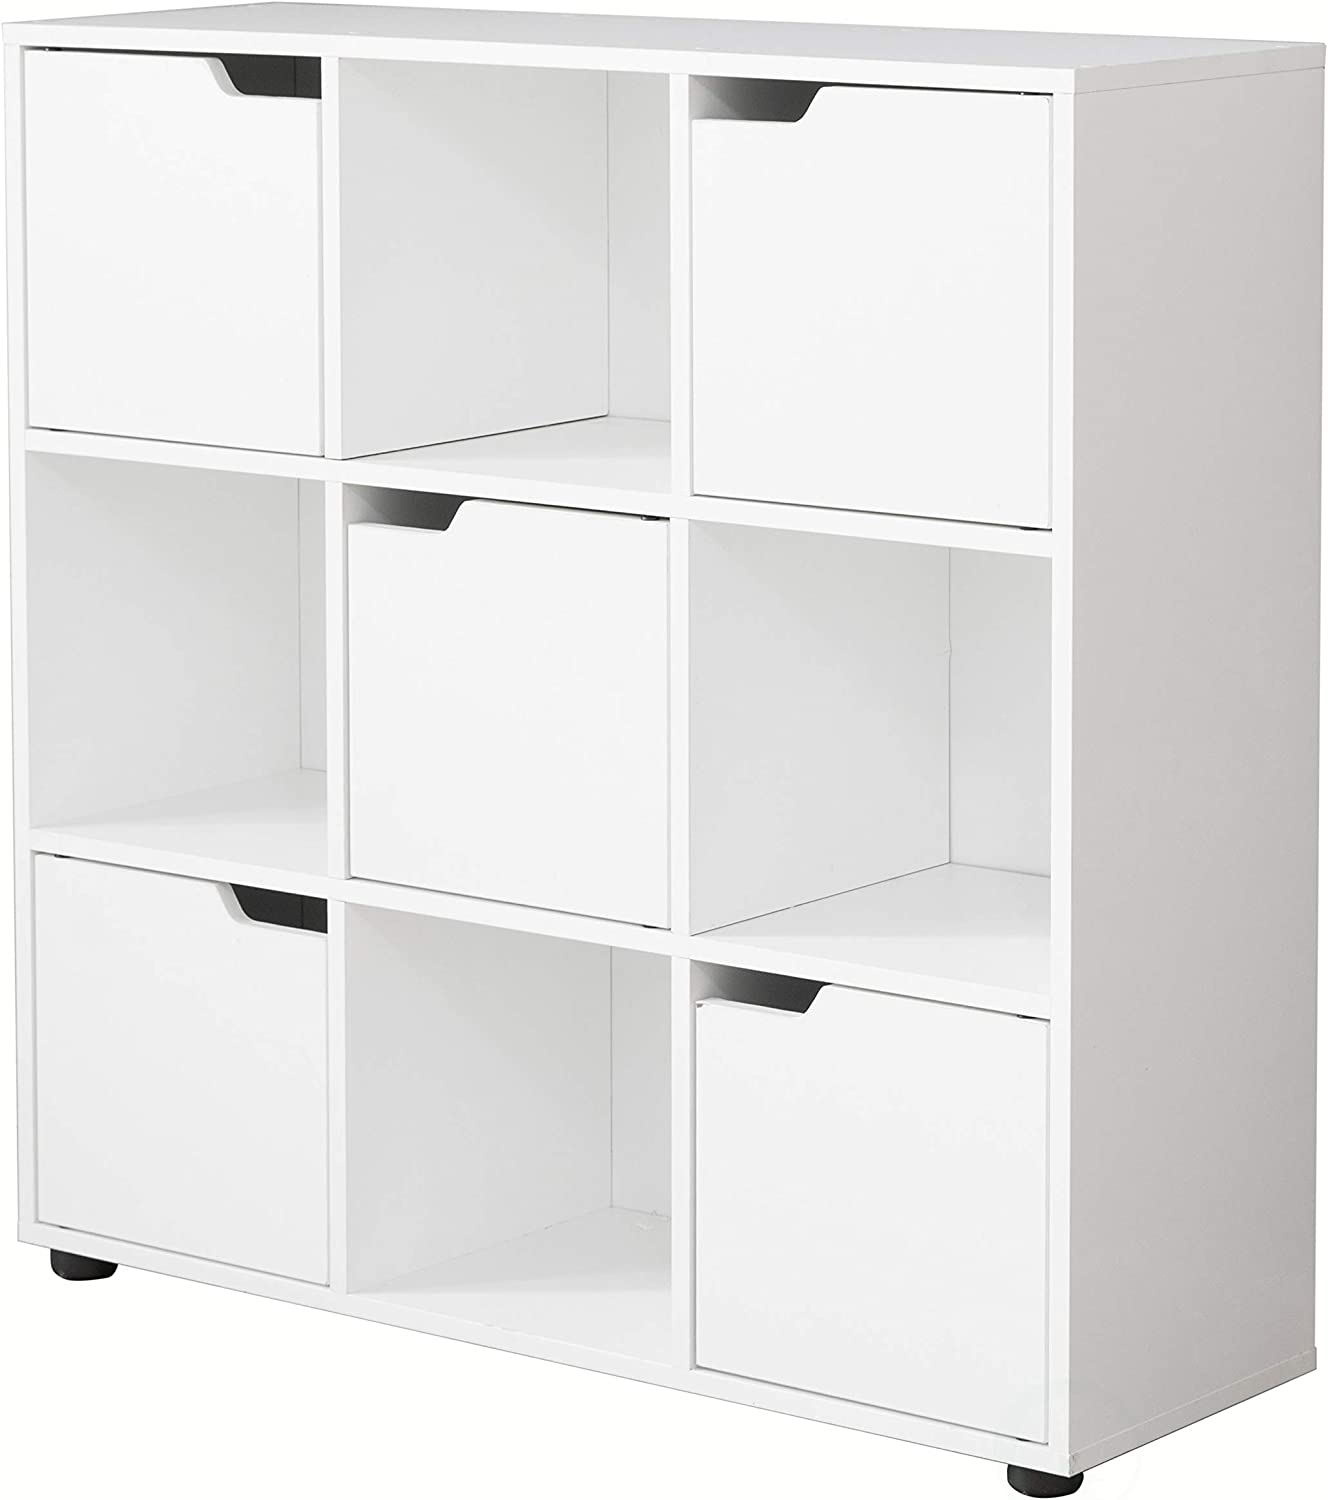 Basicwise 9 Cube Wooden Organizer with 5 Enclosed Doors and 4 Shelves, White